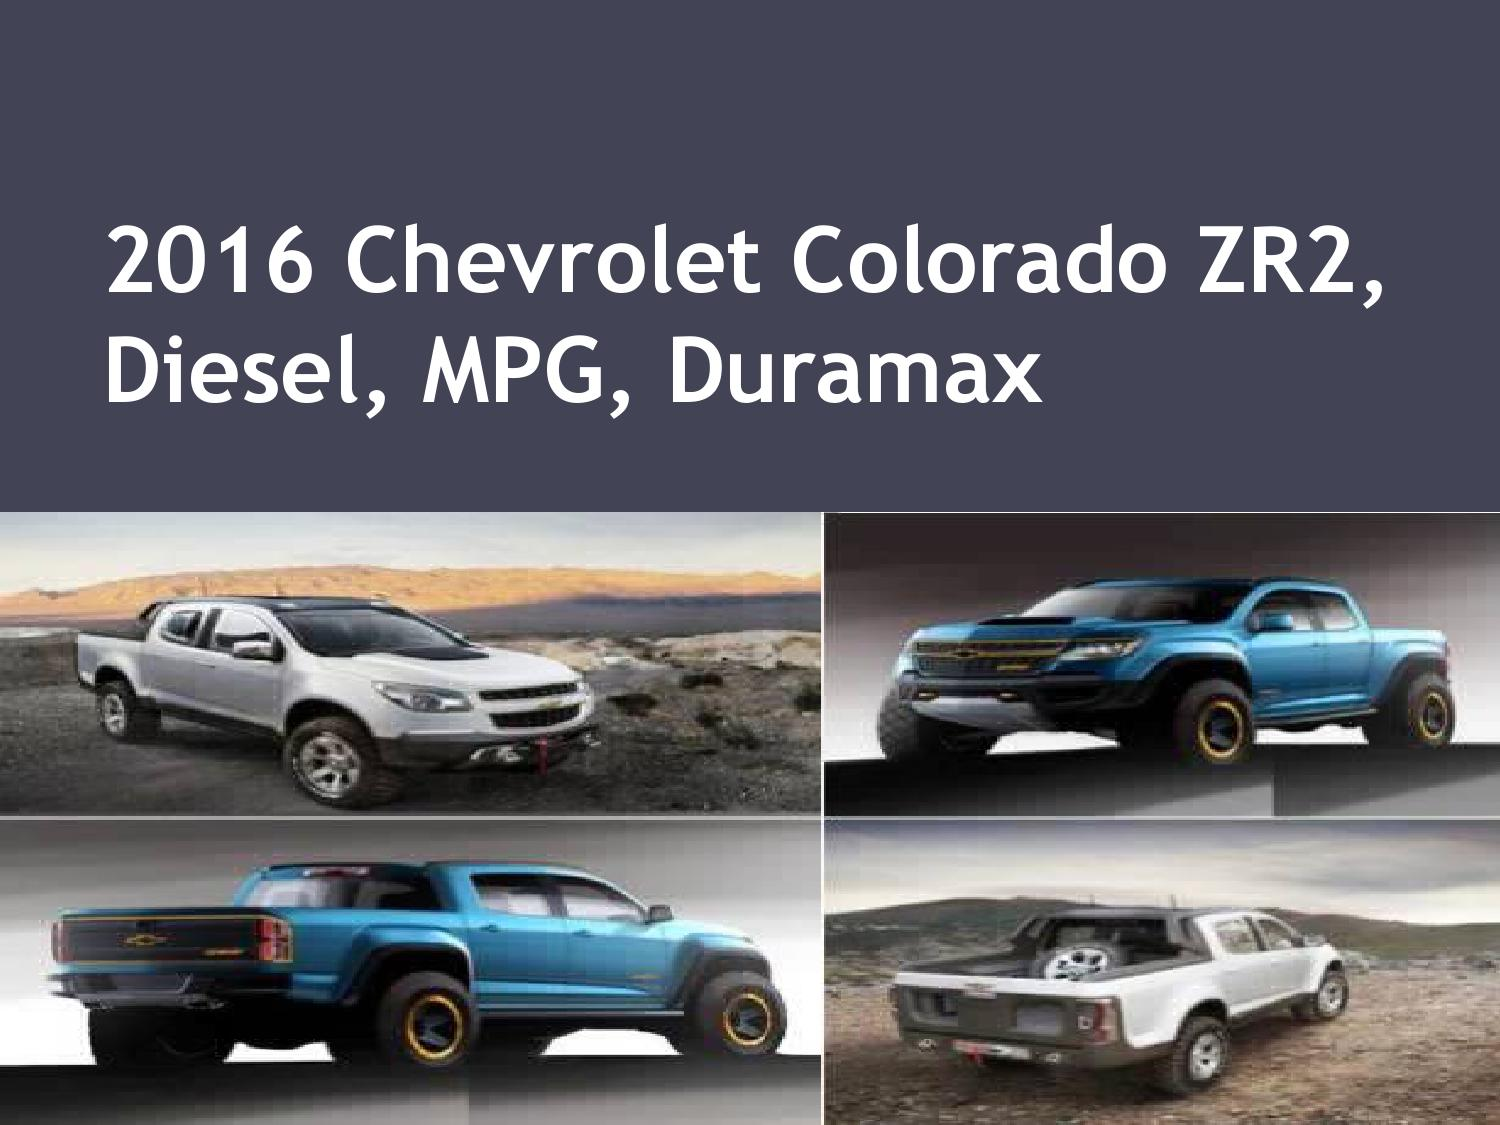 2016 chevrolet colorado zr2 diesel mpg duramax by jesika01 issuu. Black Bedroom Furniture Sets. Home Design Ideas